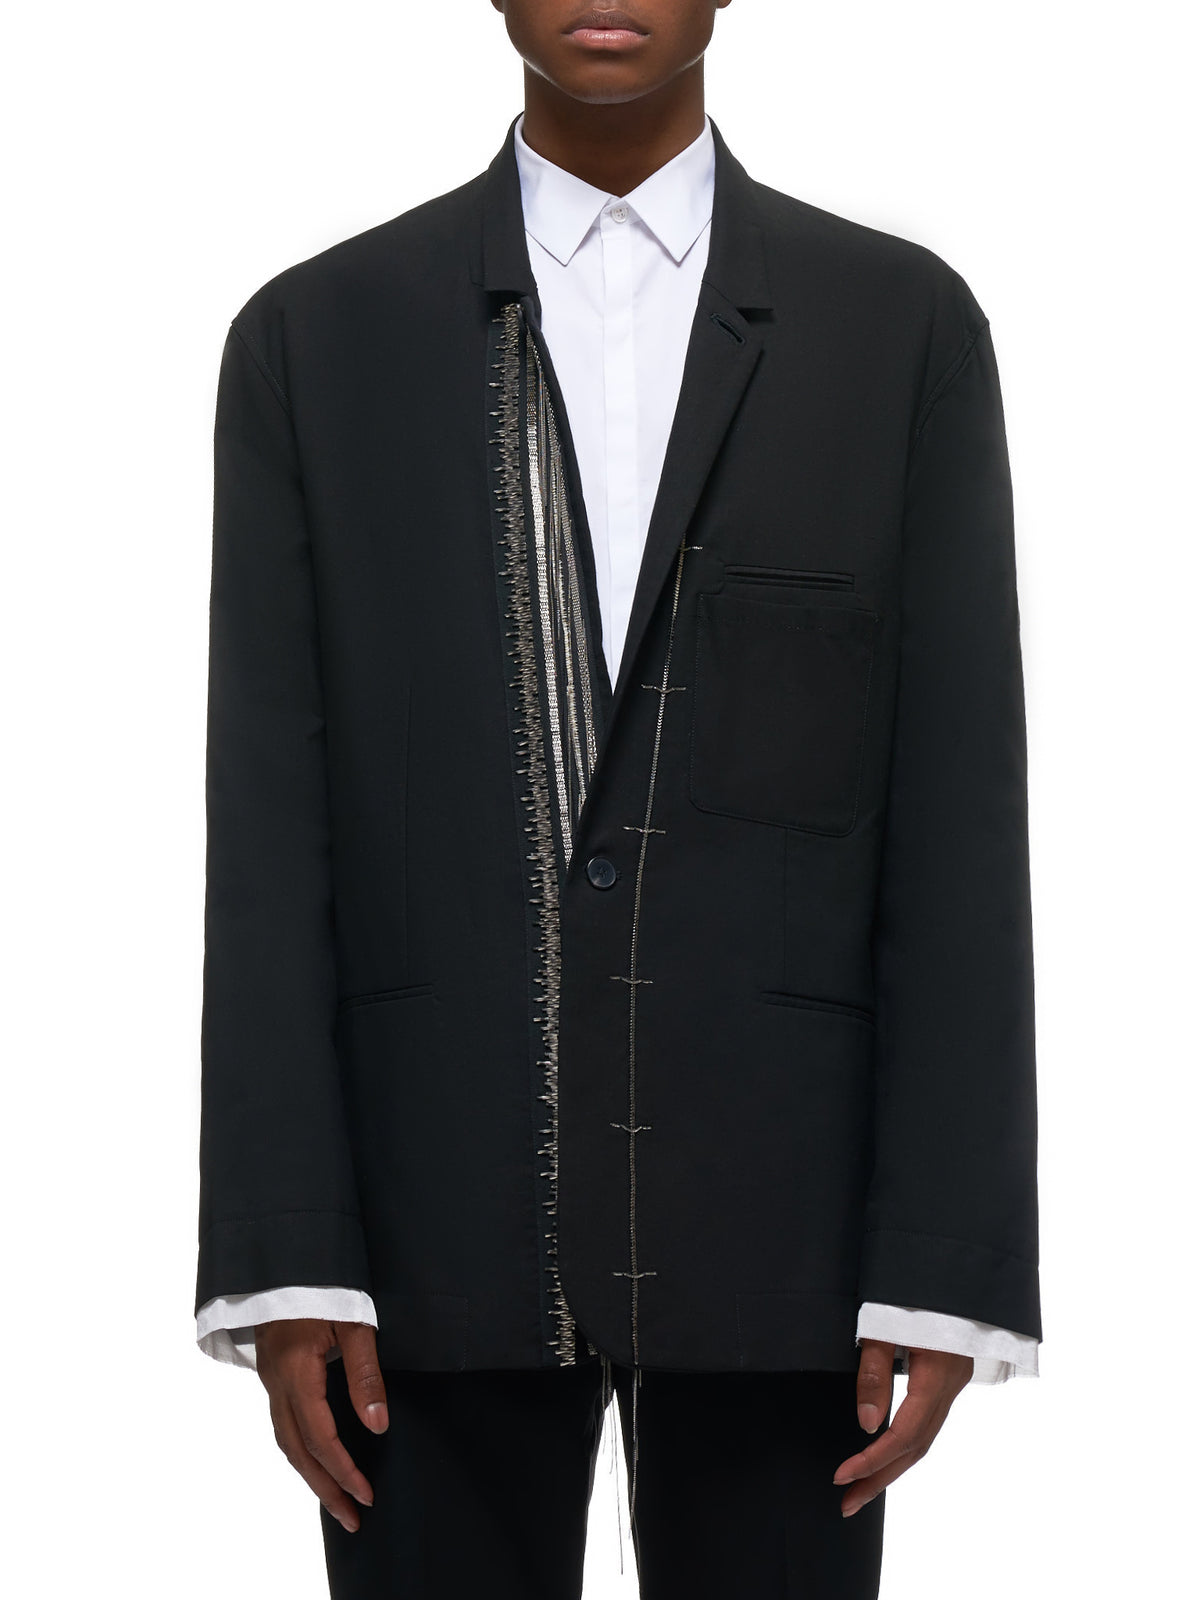 Embroidered Shirt Jacket (203-3613-B-E-421-099-BLACK)